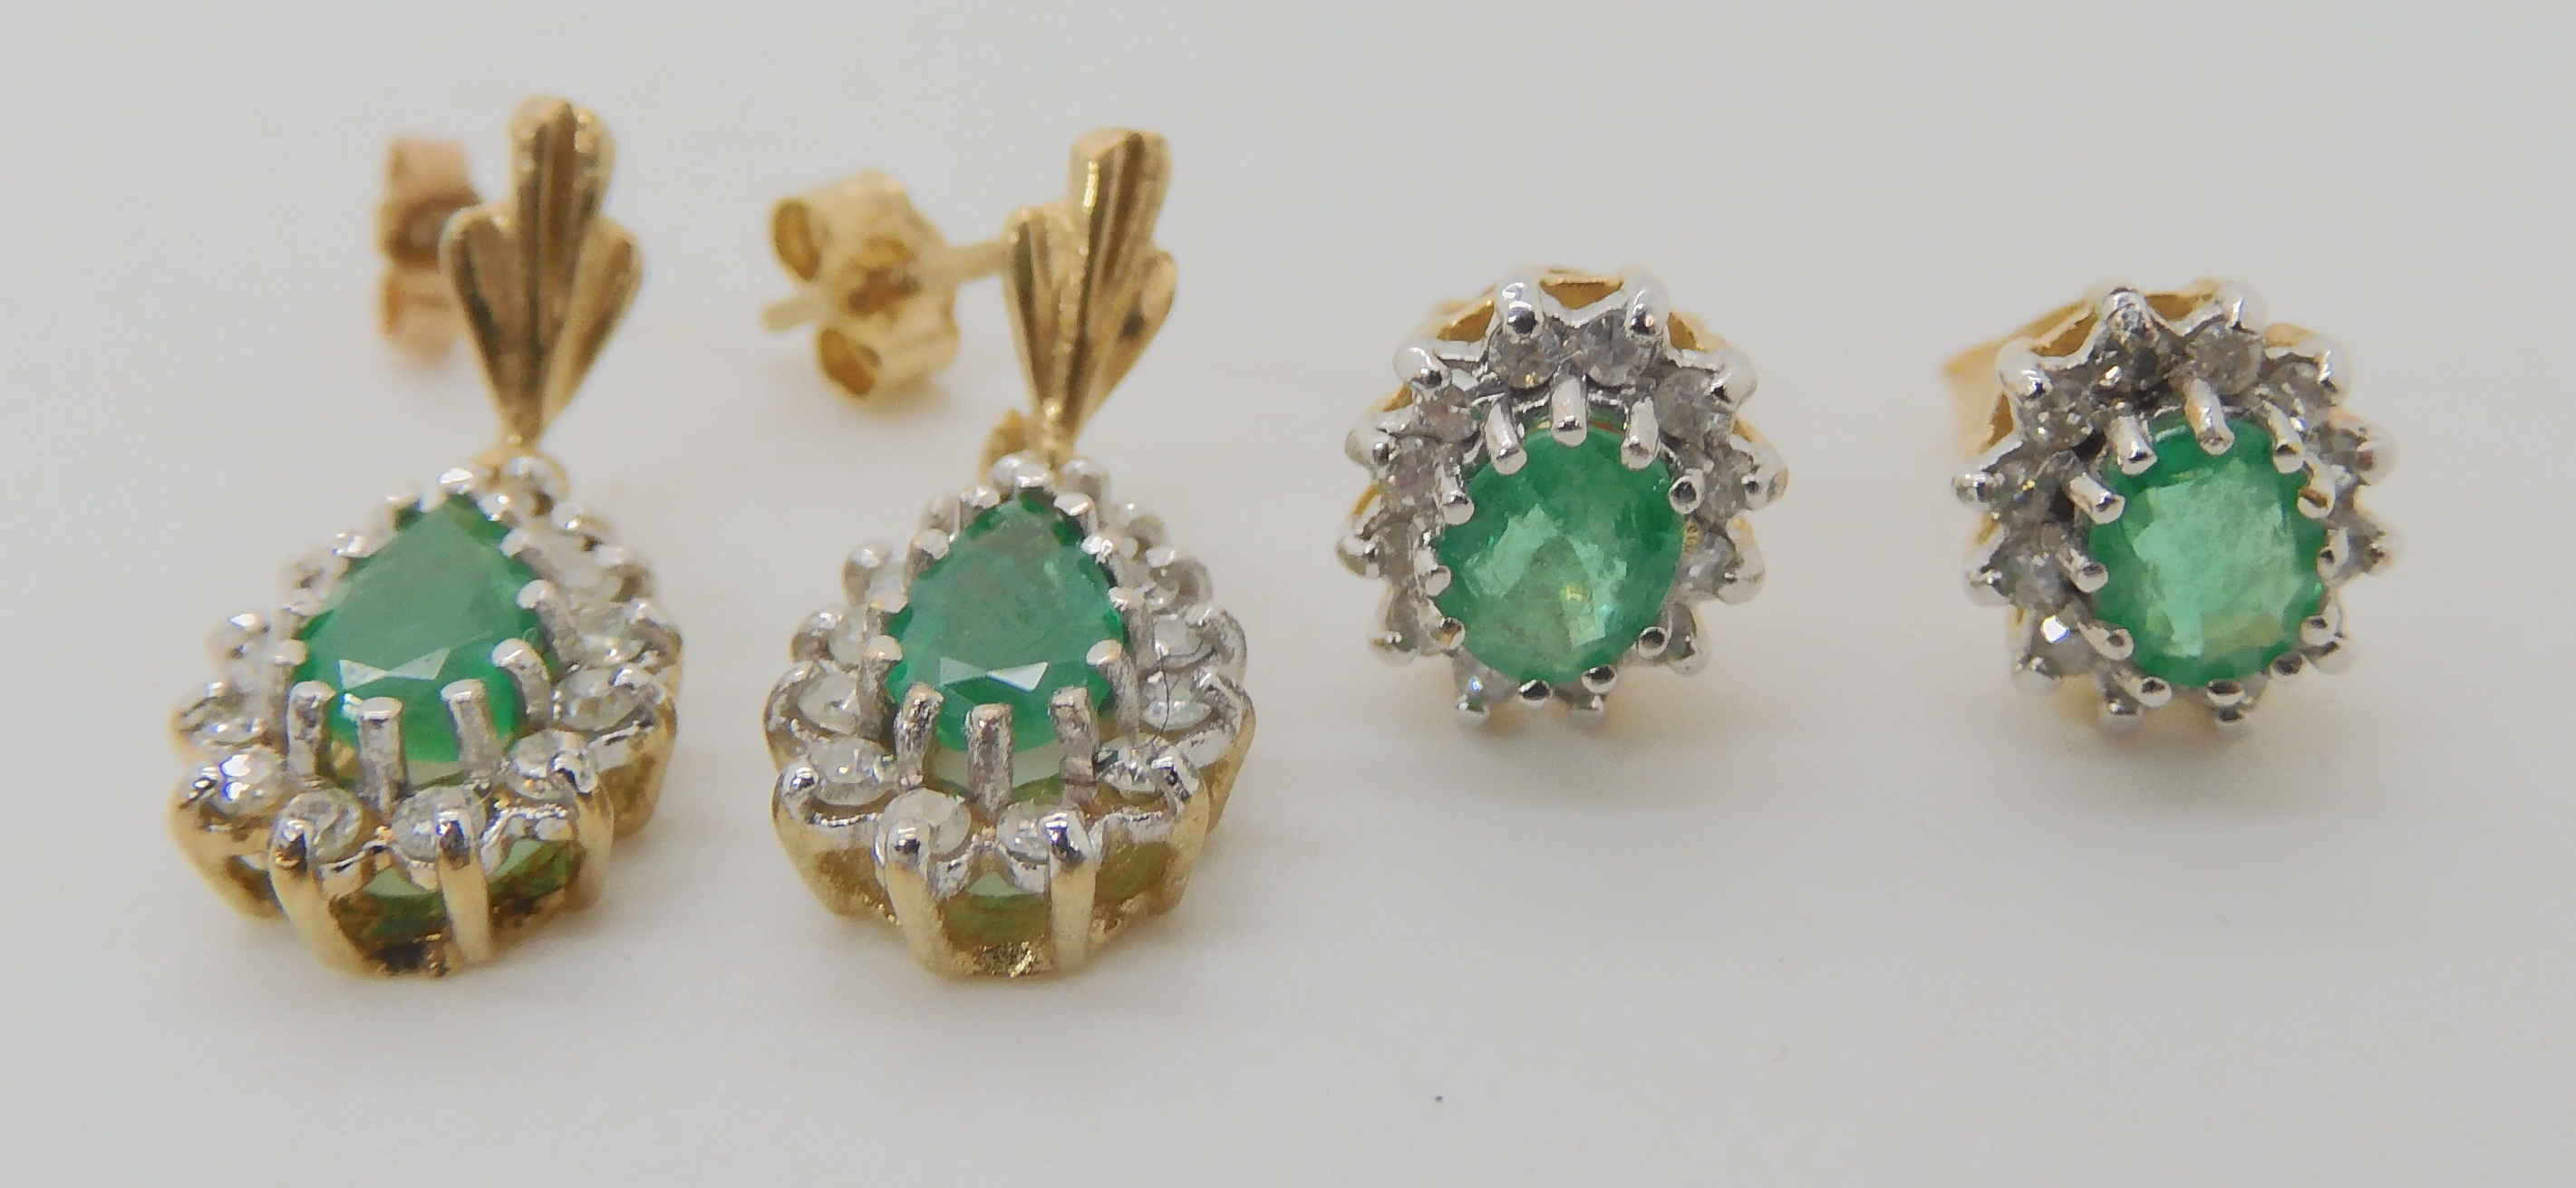 TWO PAIRS OF EMERALD AND DIAMOND EARRINGS pear shaped emerald and diamond drop earrings, set with - Image 2 of 4